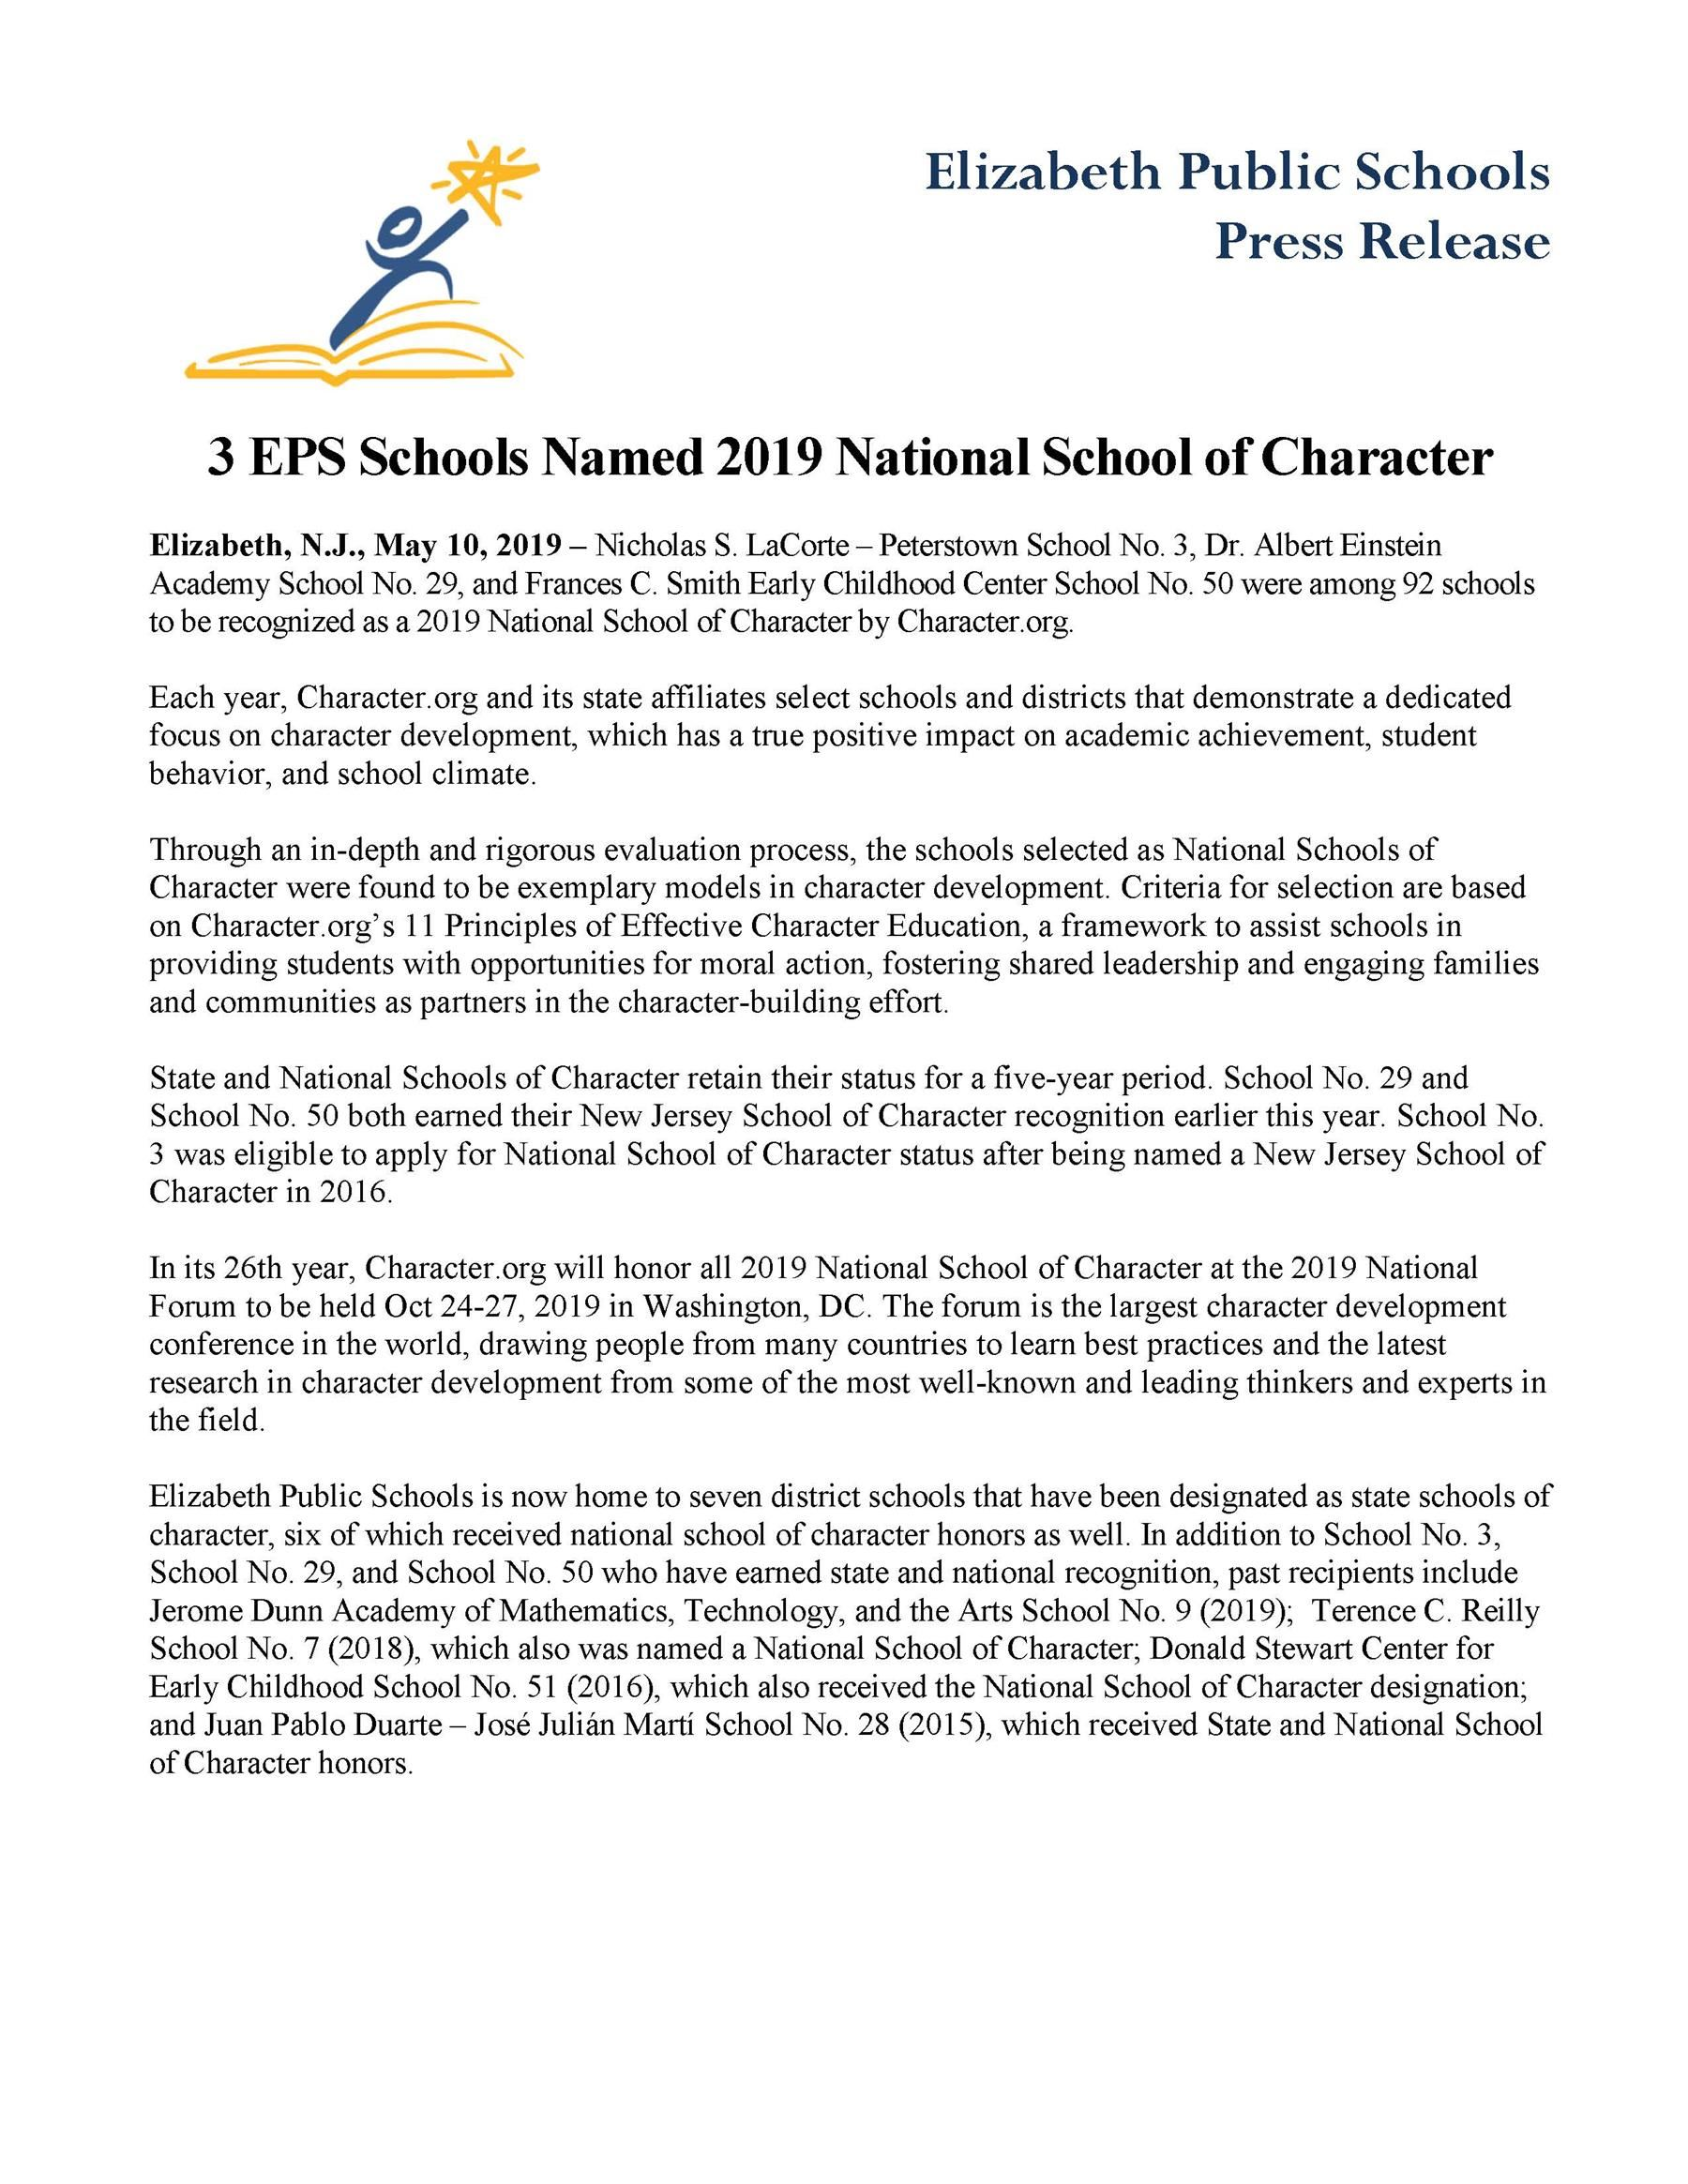 3 EPS Schools Named 2019 National School of Character - 5-10-19